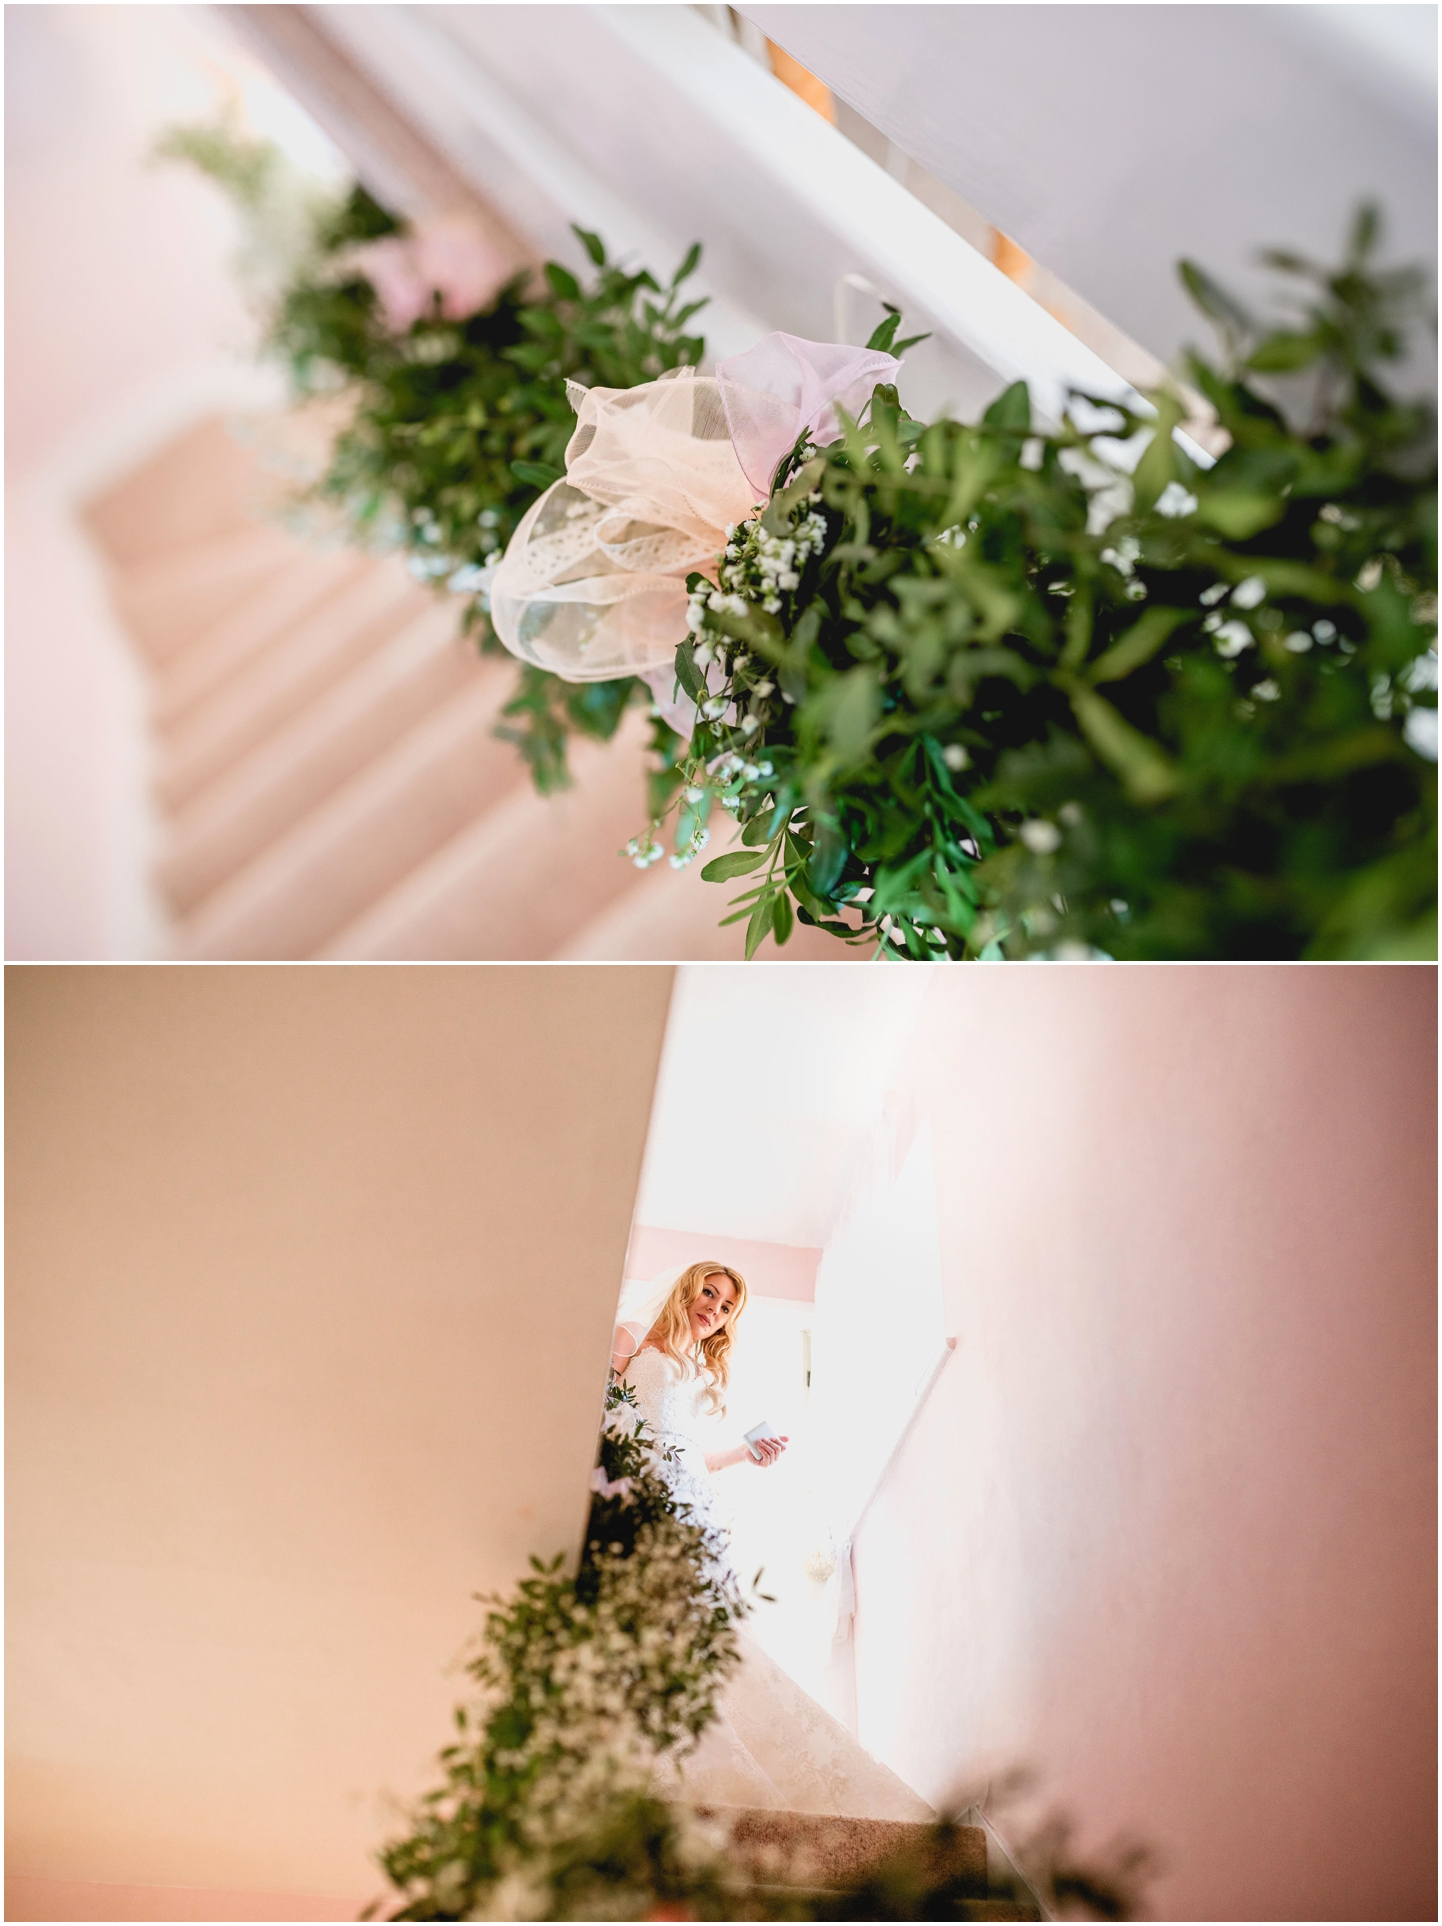 Moss And Caras Summer Wedding At Shustoke Barns